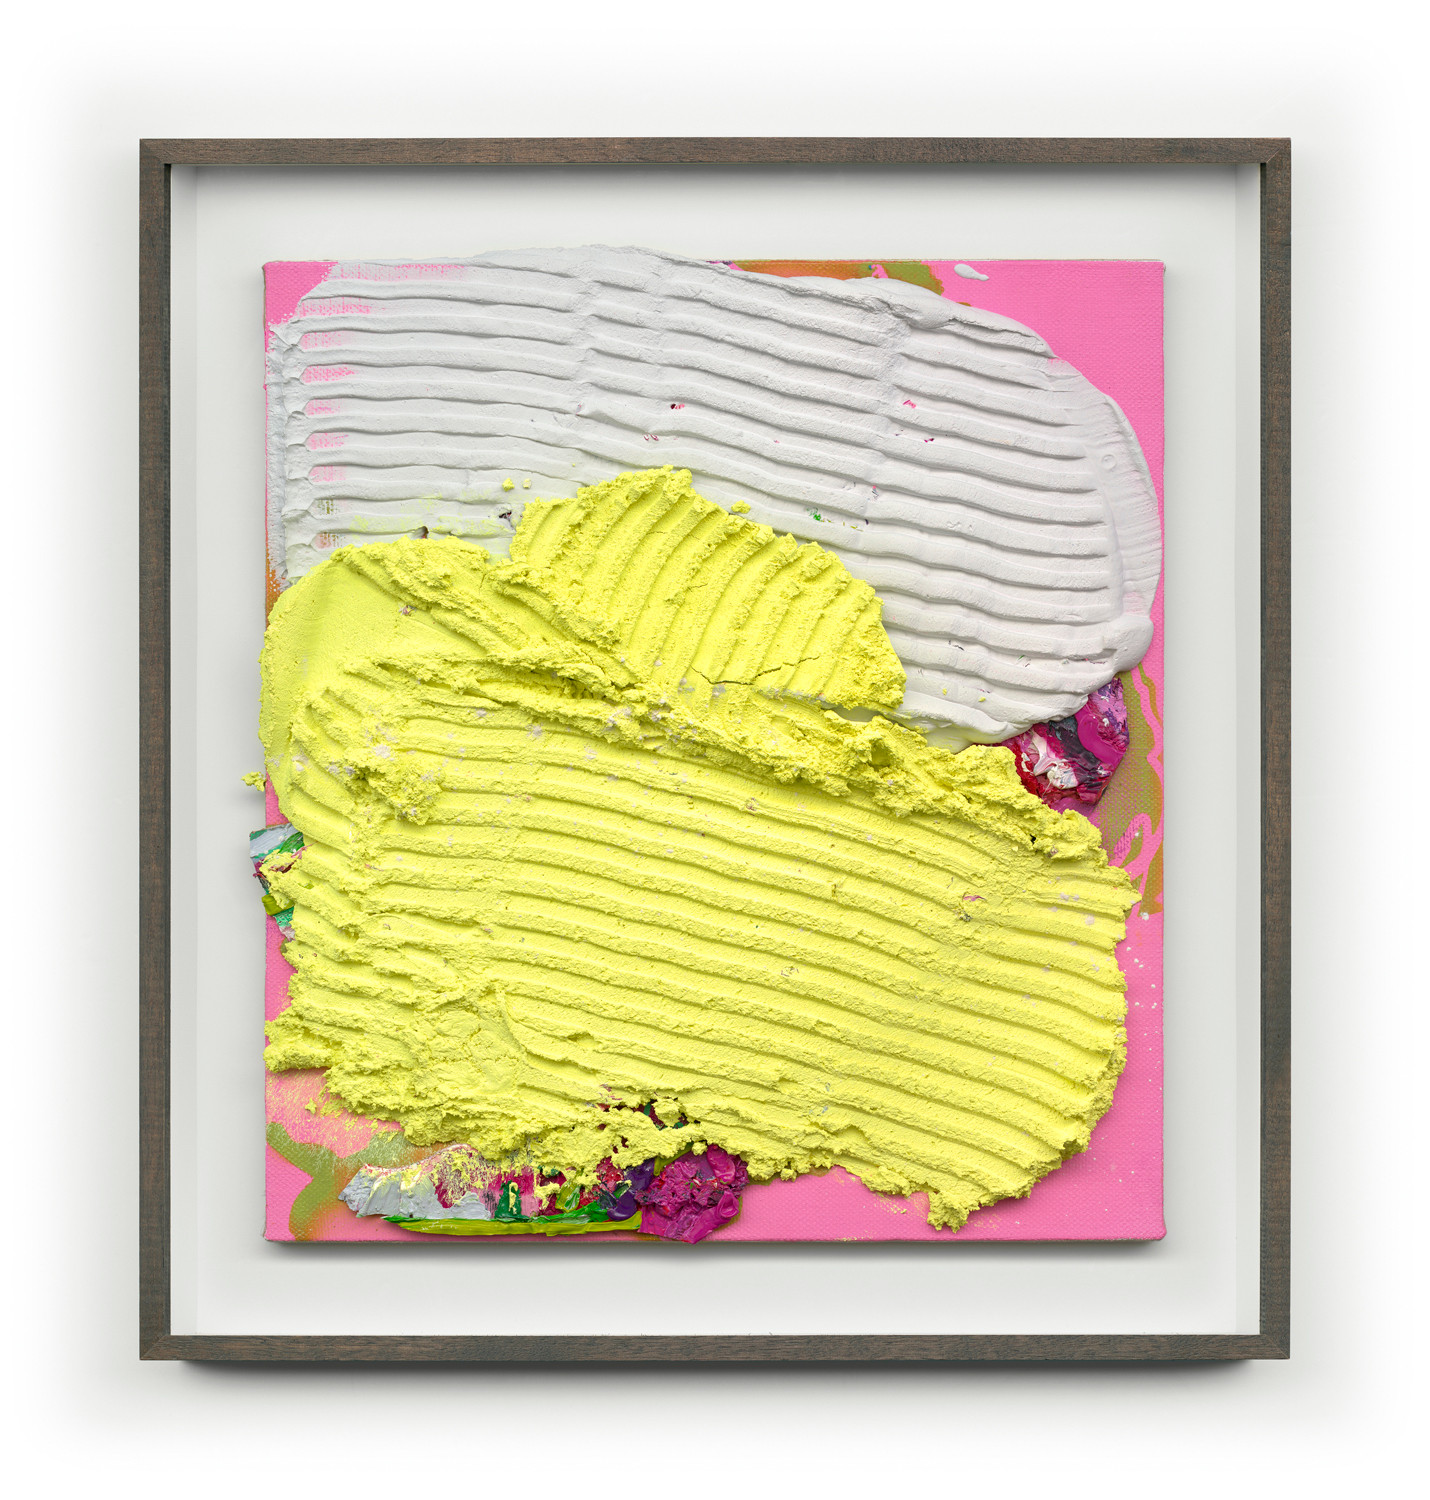 Untitled #Yellow (Framed) 65cm x 70cm (Artwork) Mixed Media on Panel $4,000 AUS SOLD